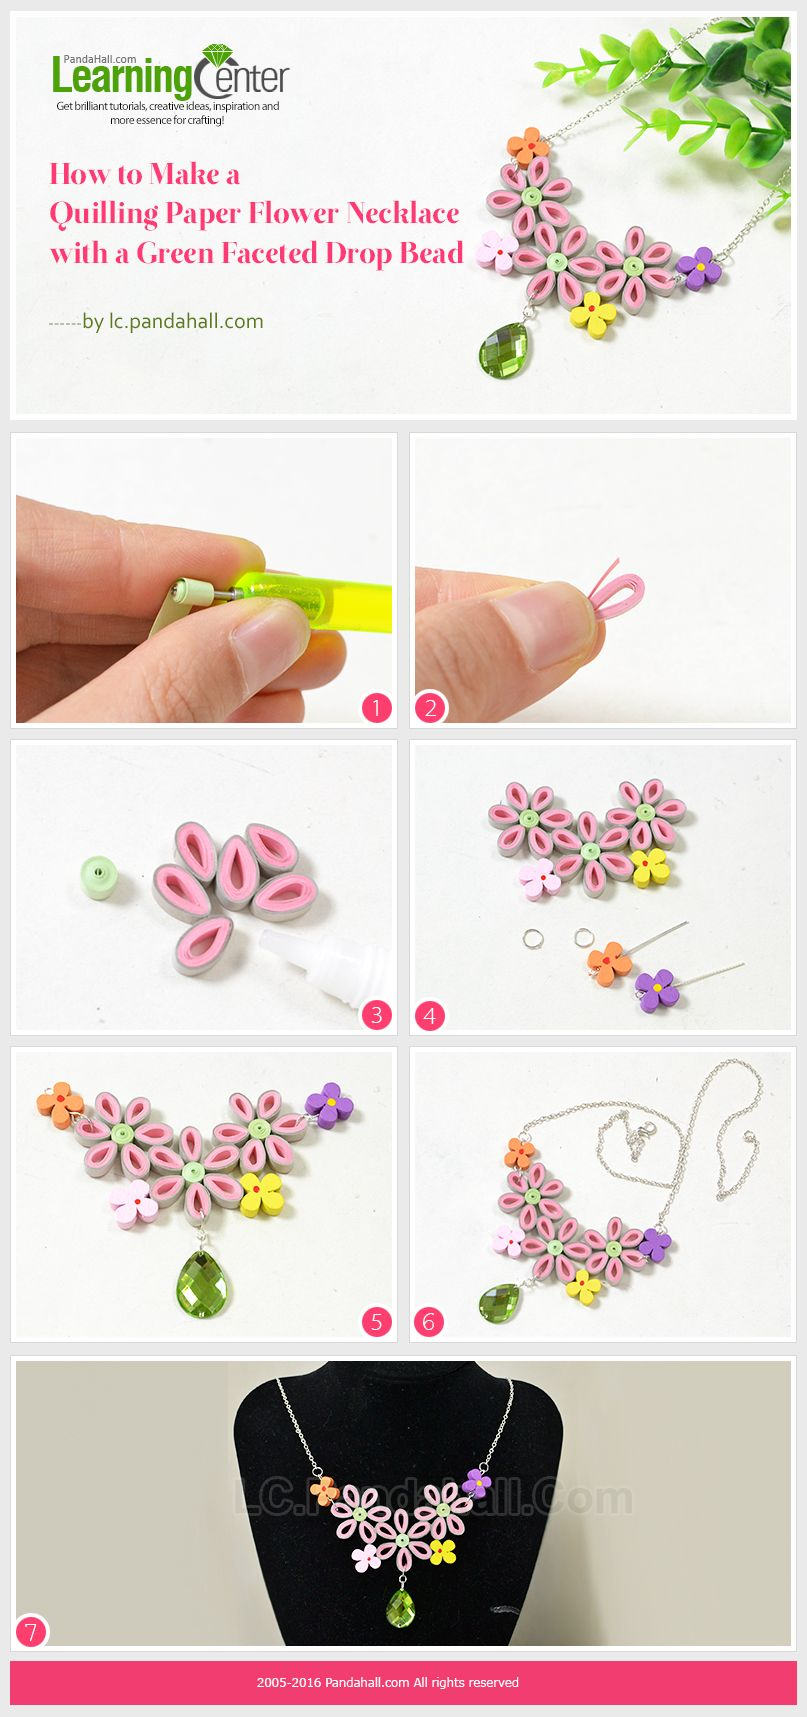 How to make a quilling paper flower necklace with a green faceted